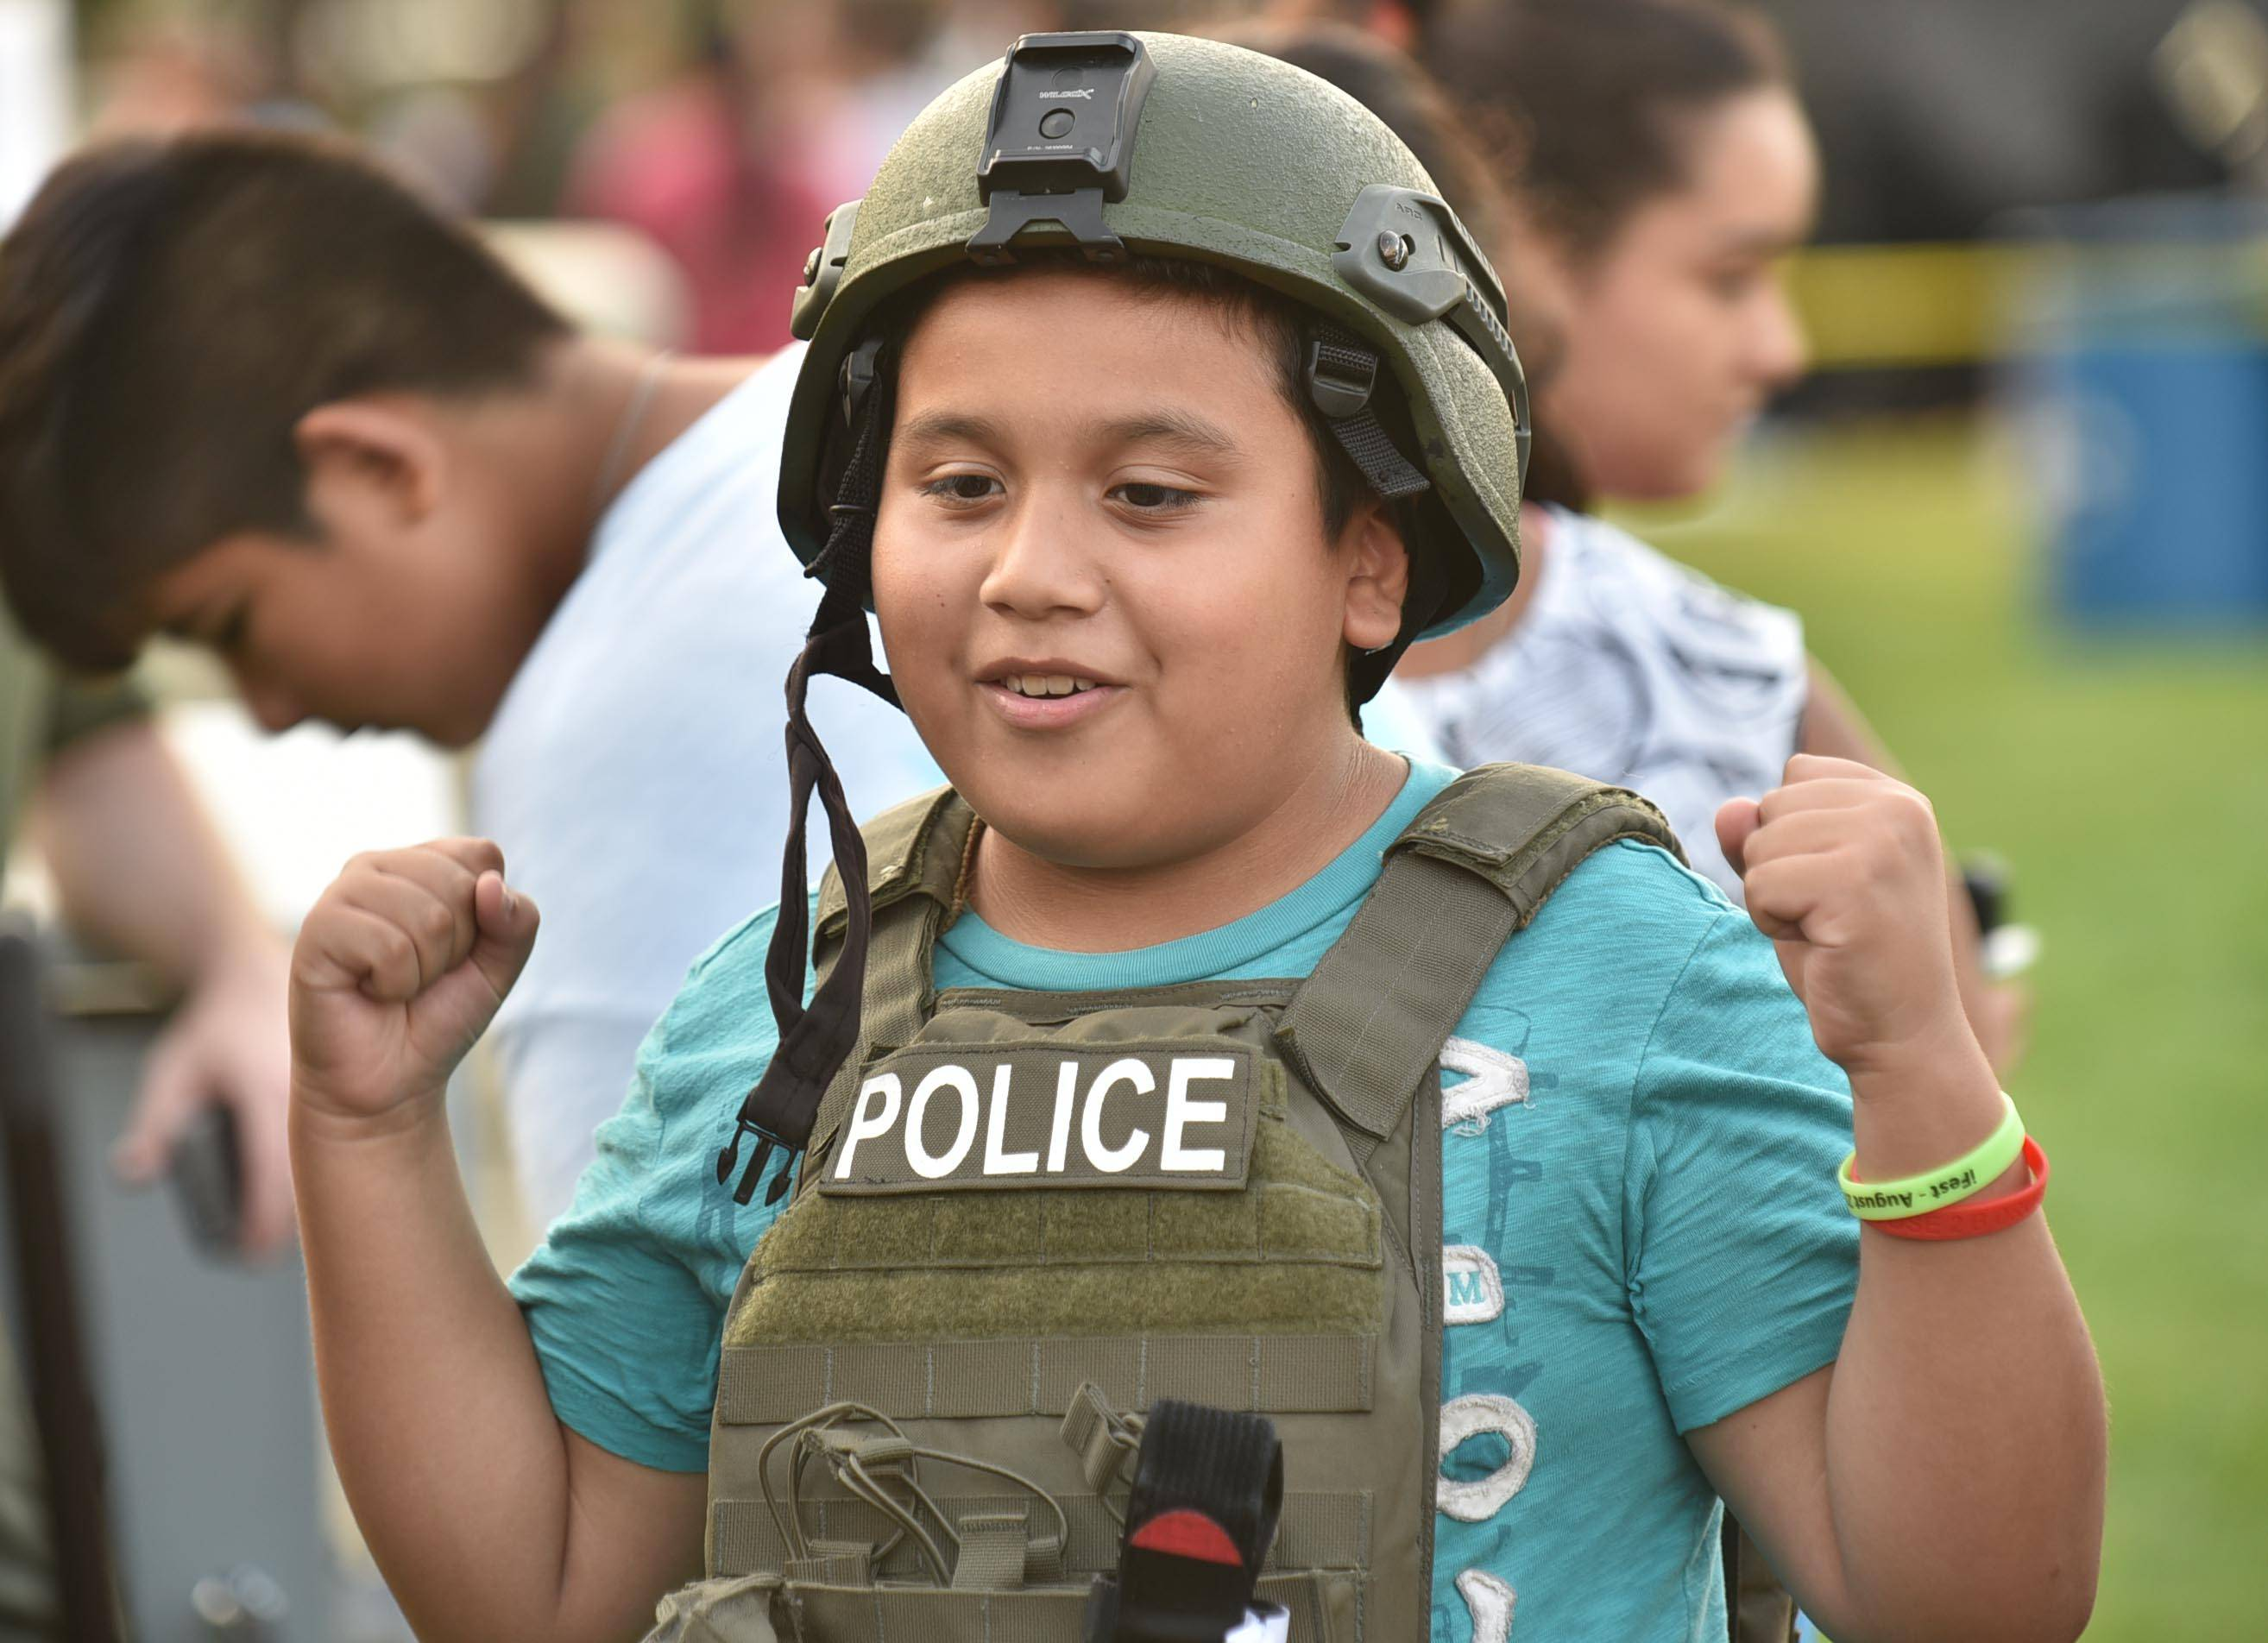 Dennis Martinez, 9, of Carpentersville pumps his fists while trying on police SWAT gear at Tuesday's National Night Out event at Festival Park in Elgin.